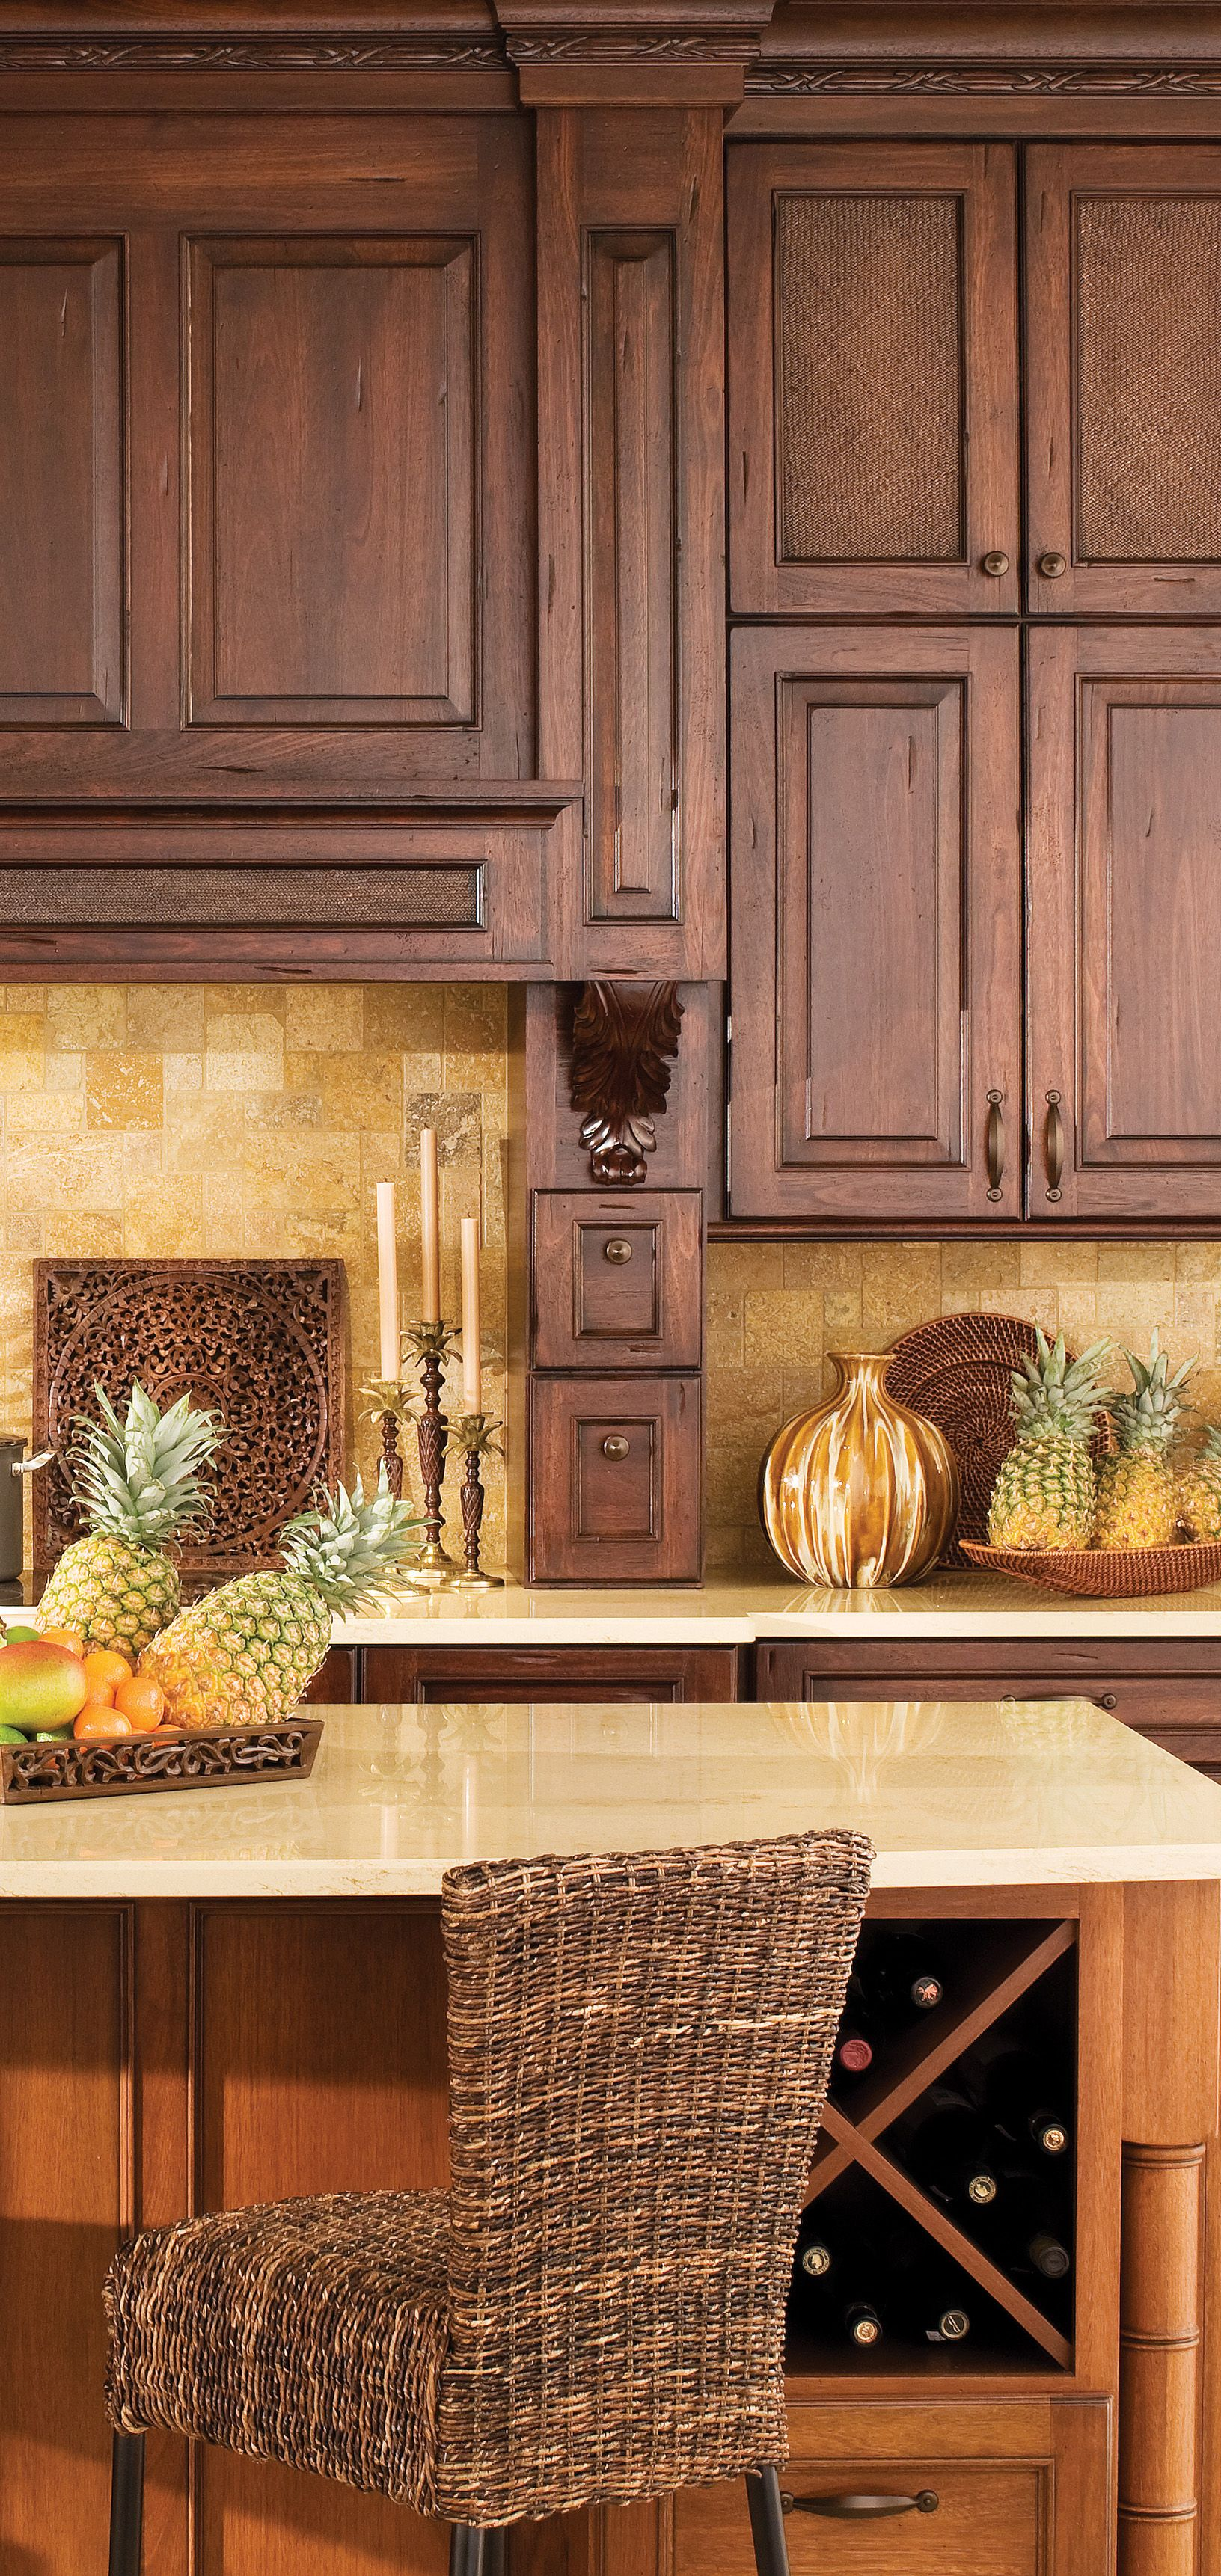 Tropical Kitchen Ideas: West Indies Style Is A Traditional And Tropical Interior